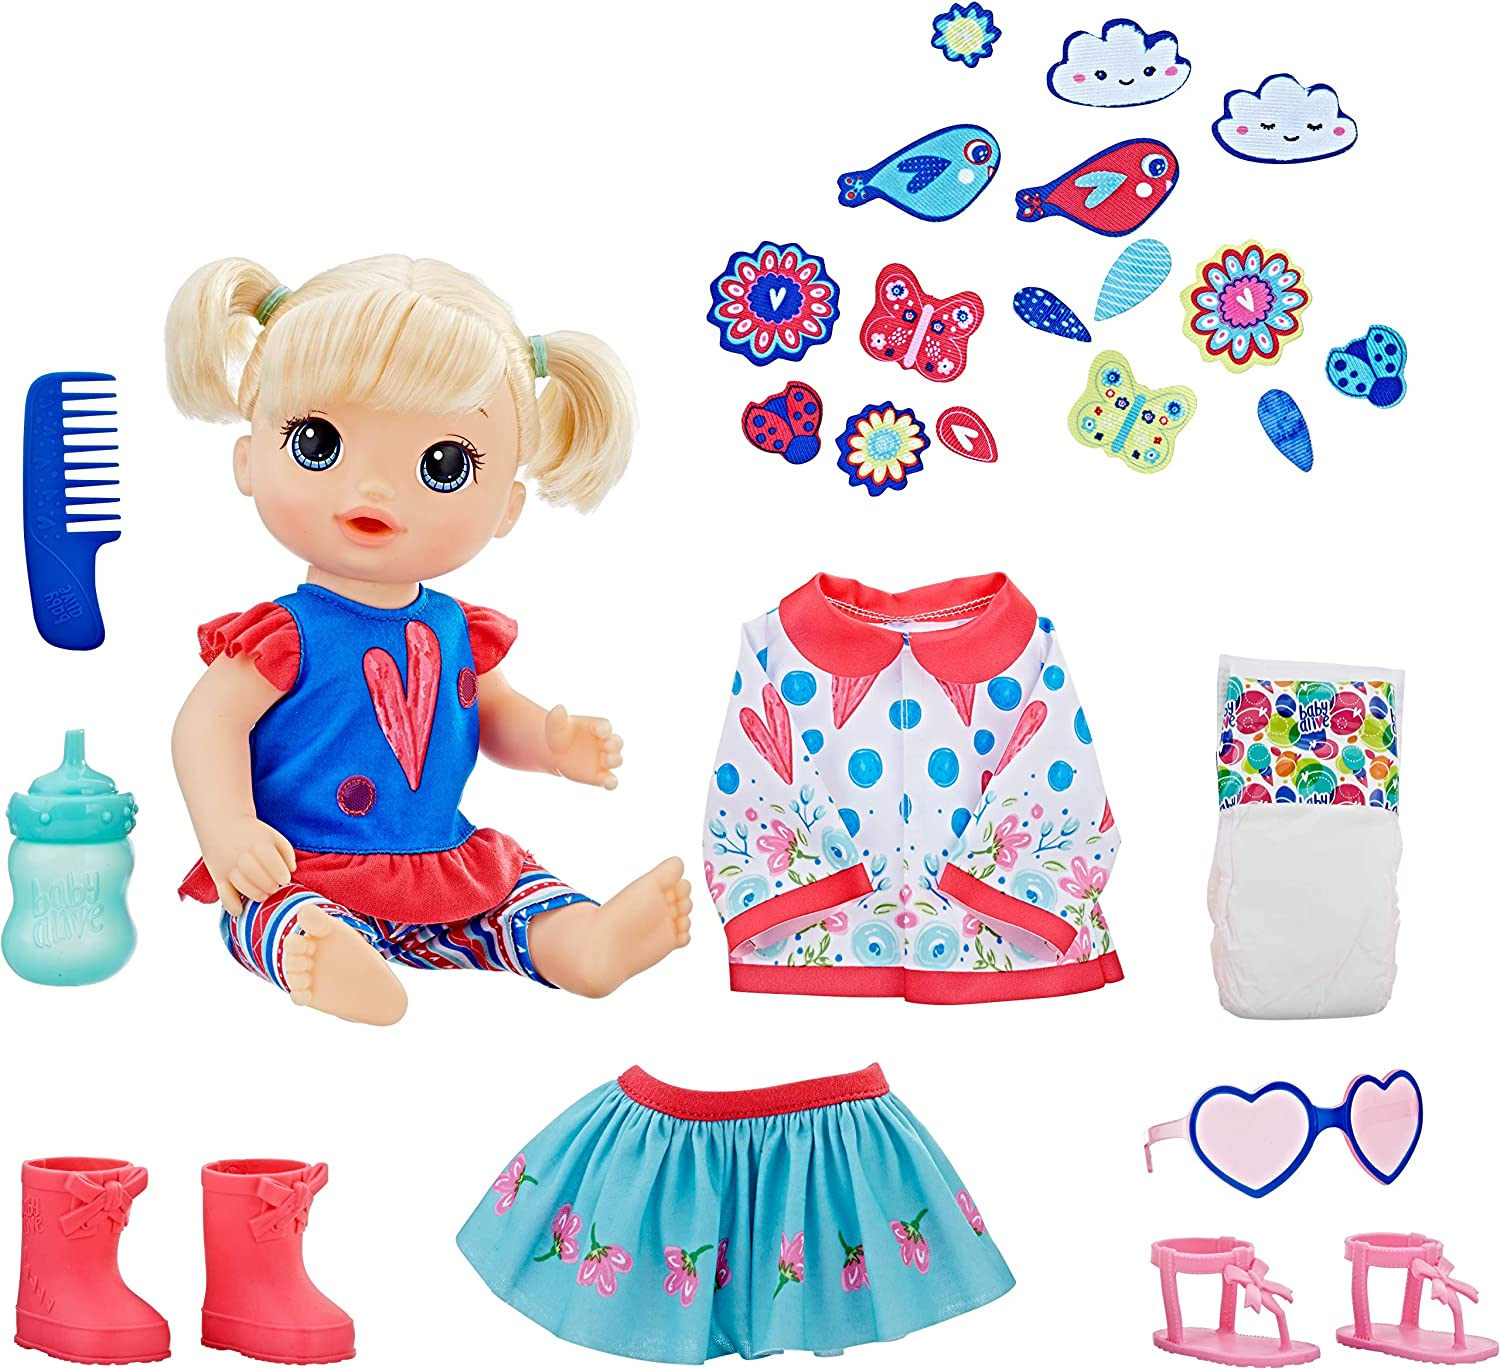 New Baby Alive So Many Styles Baby Drinks And Pees Blonde Hair